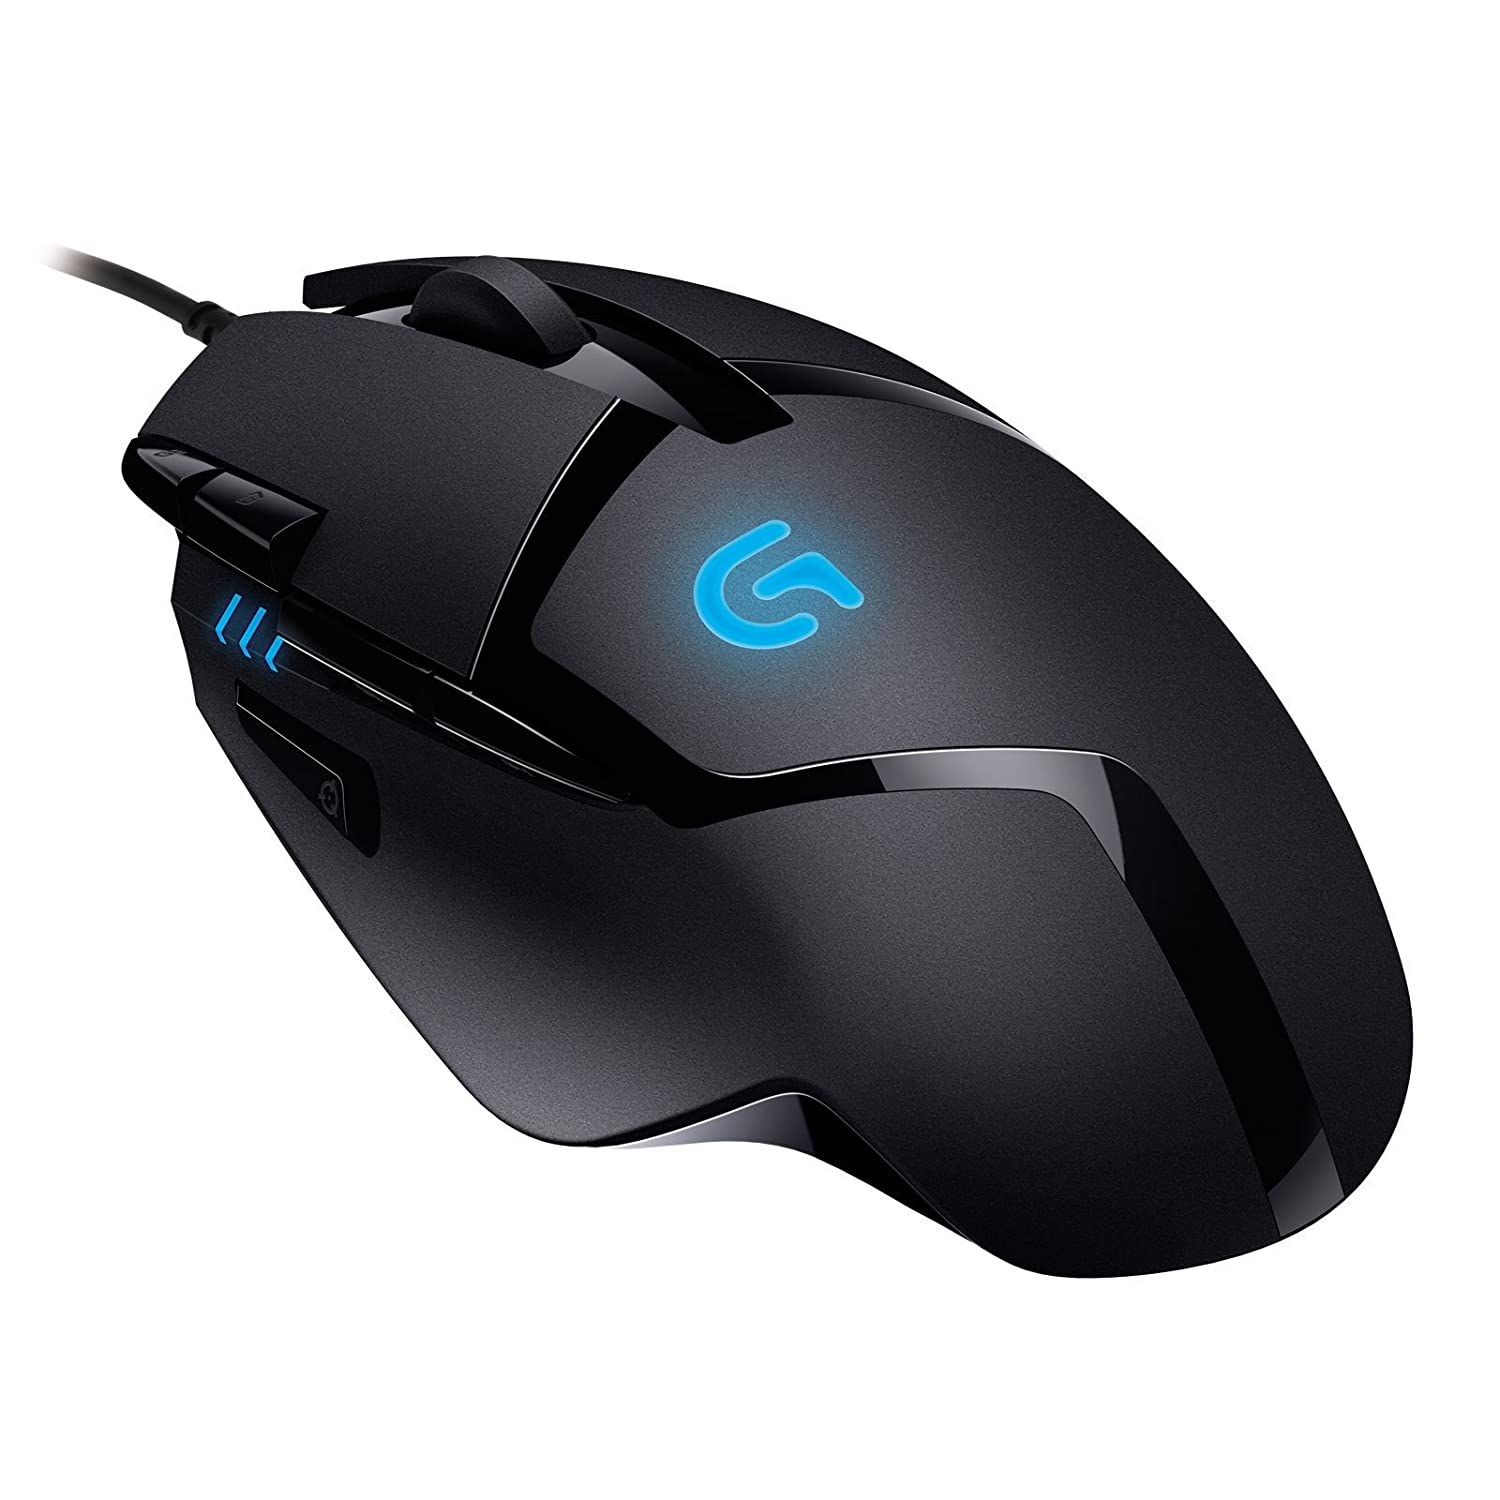 Logitech G402 Hyperion Fury su Amazon